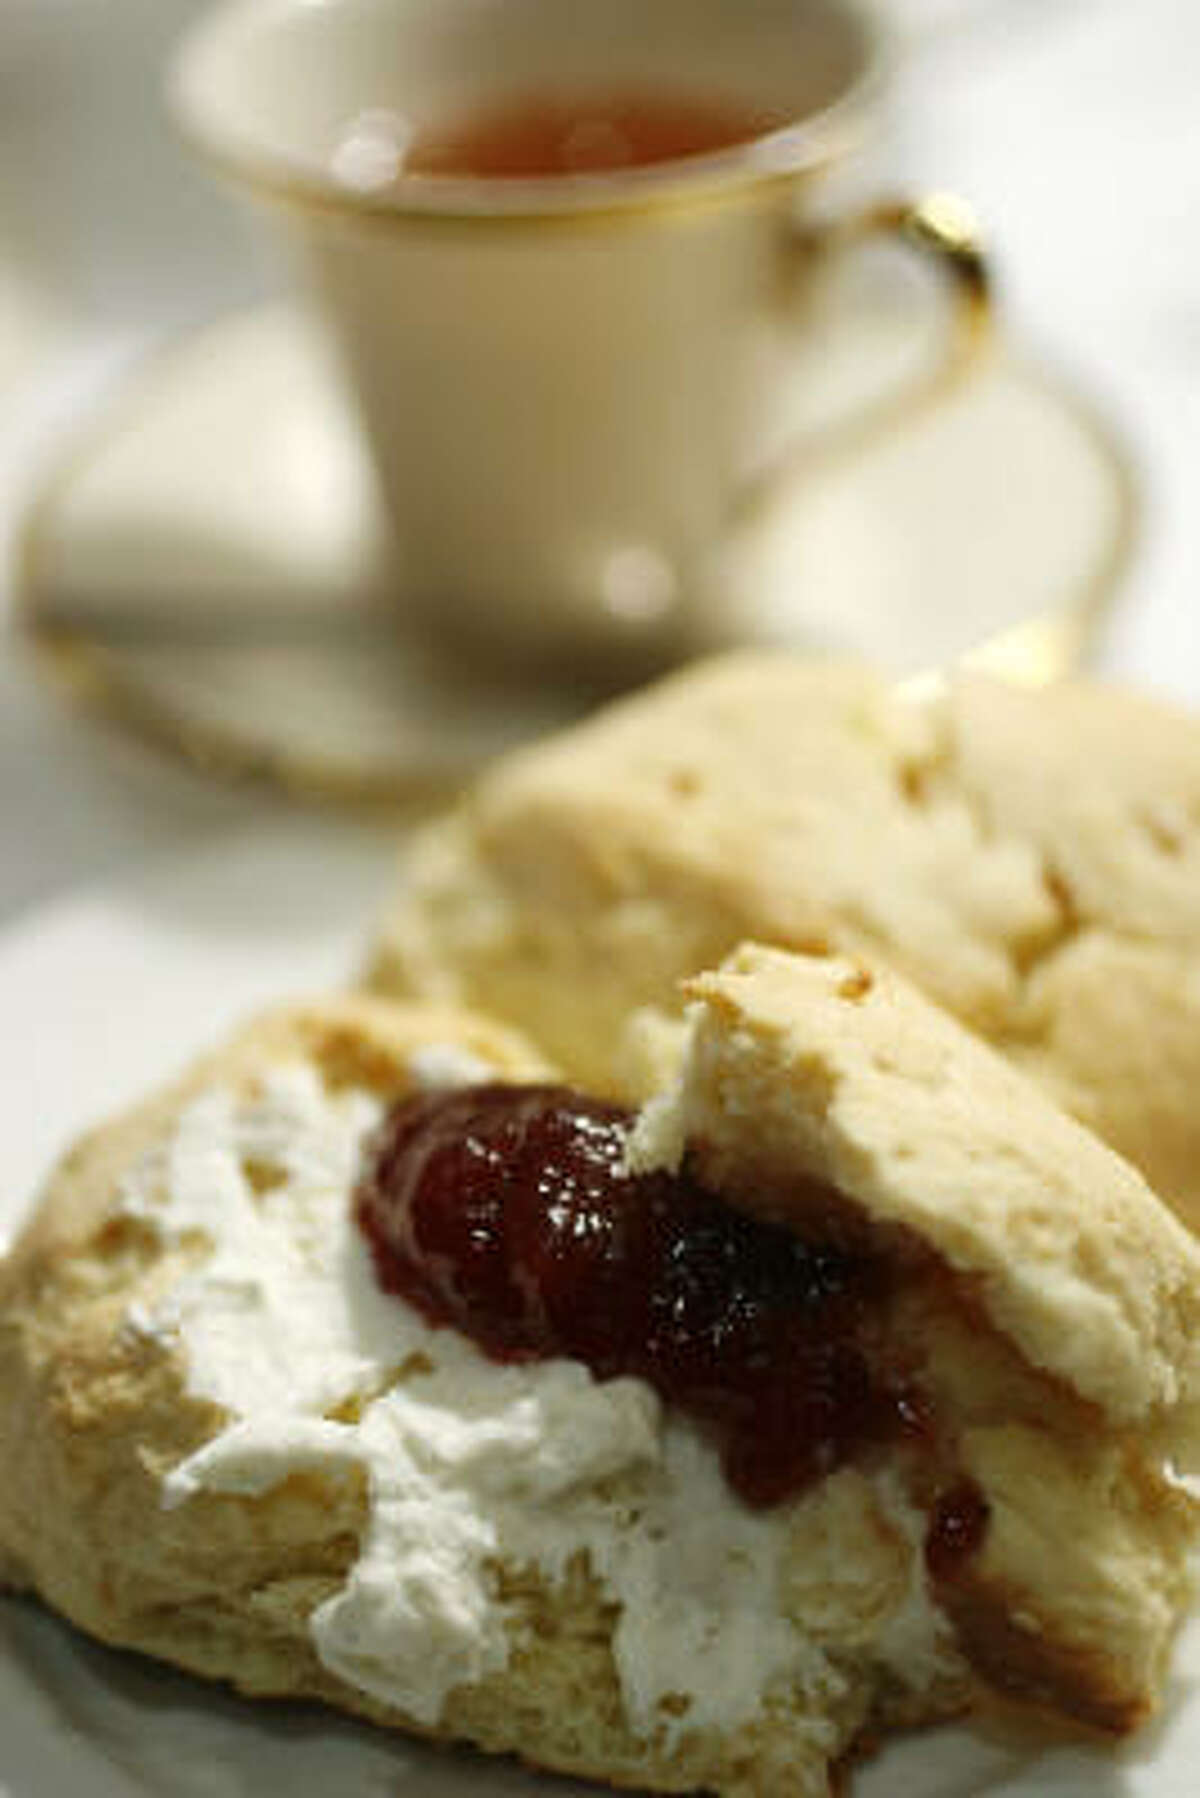 Slathered with clotted cream and strawberry preserves, this tender, cakelike golden scone is a snap to make with a couple of eggs and King Arthur Flour's Cream Tea Scone Mix. See Quick-Fix Scones below for more on mixes.